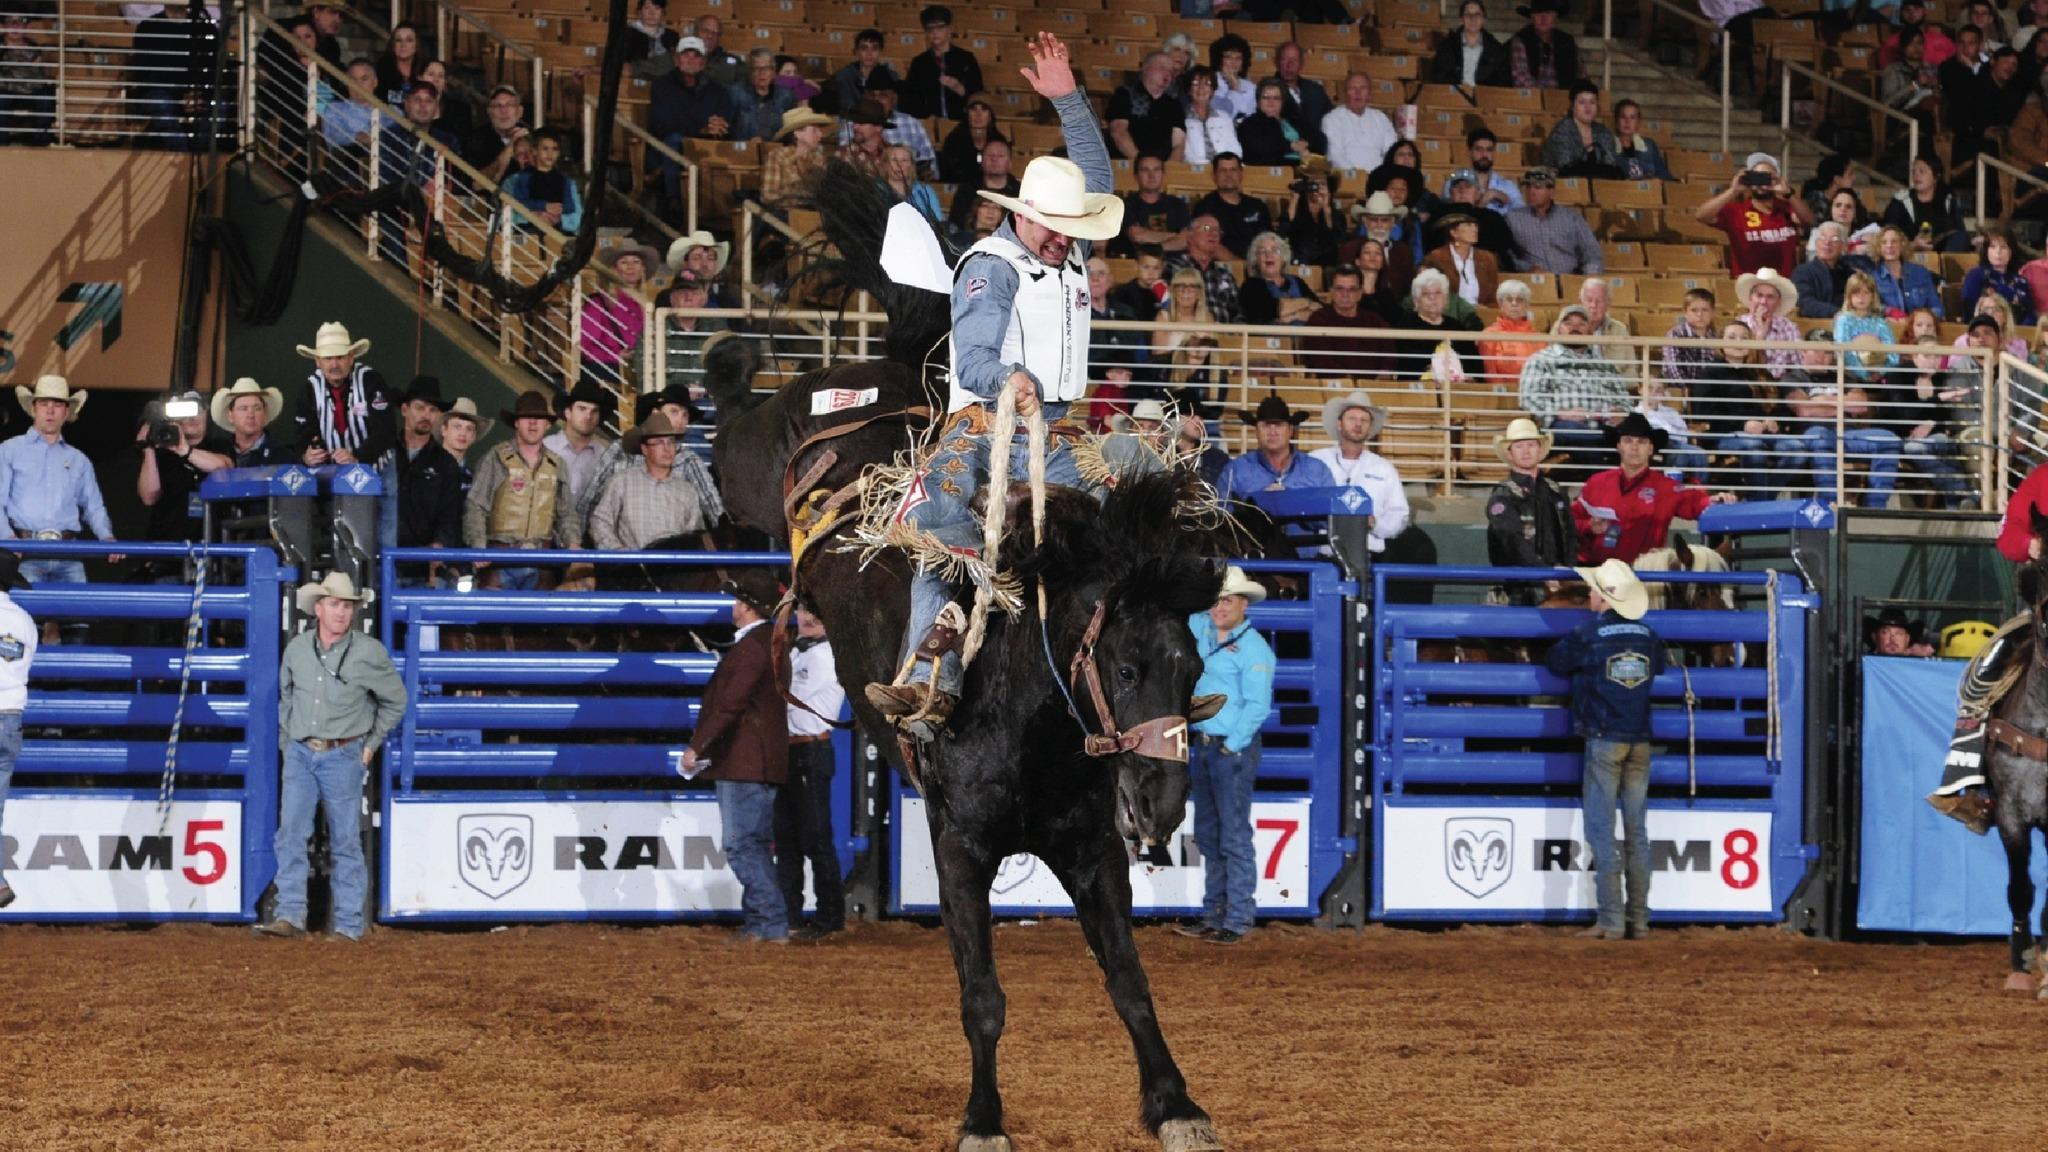 RAM National Circuit Finals Rodeo - Rodeo Preview Day